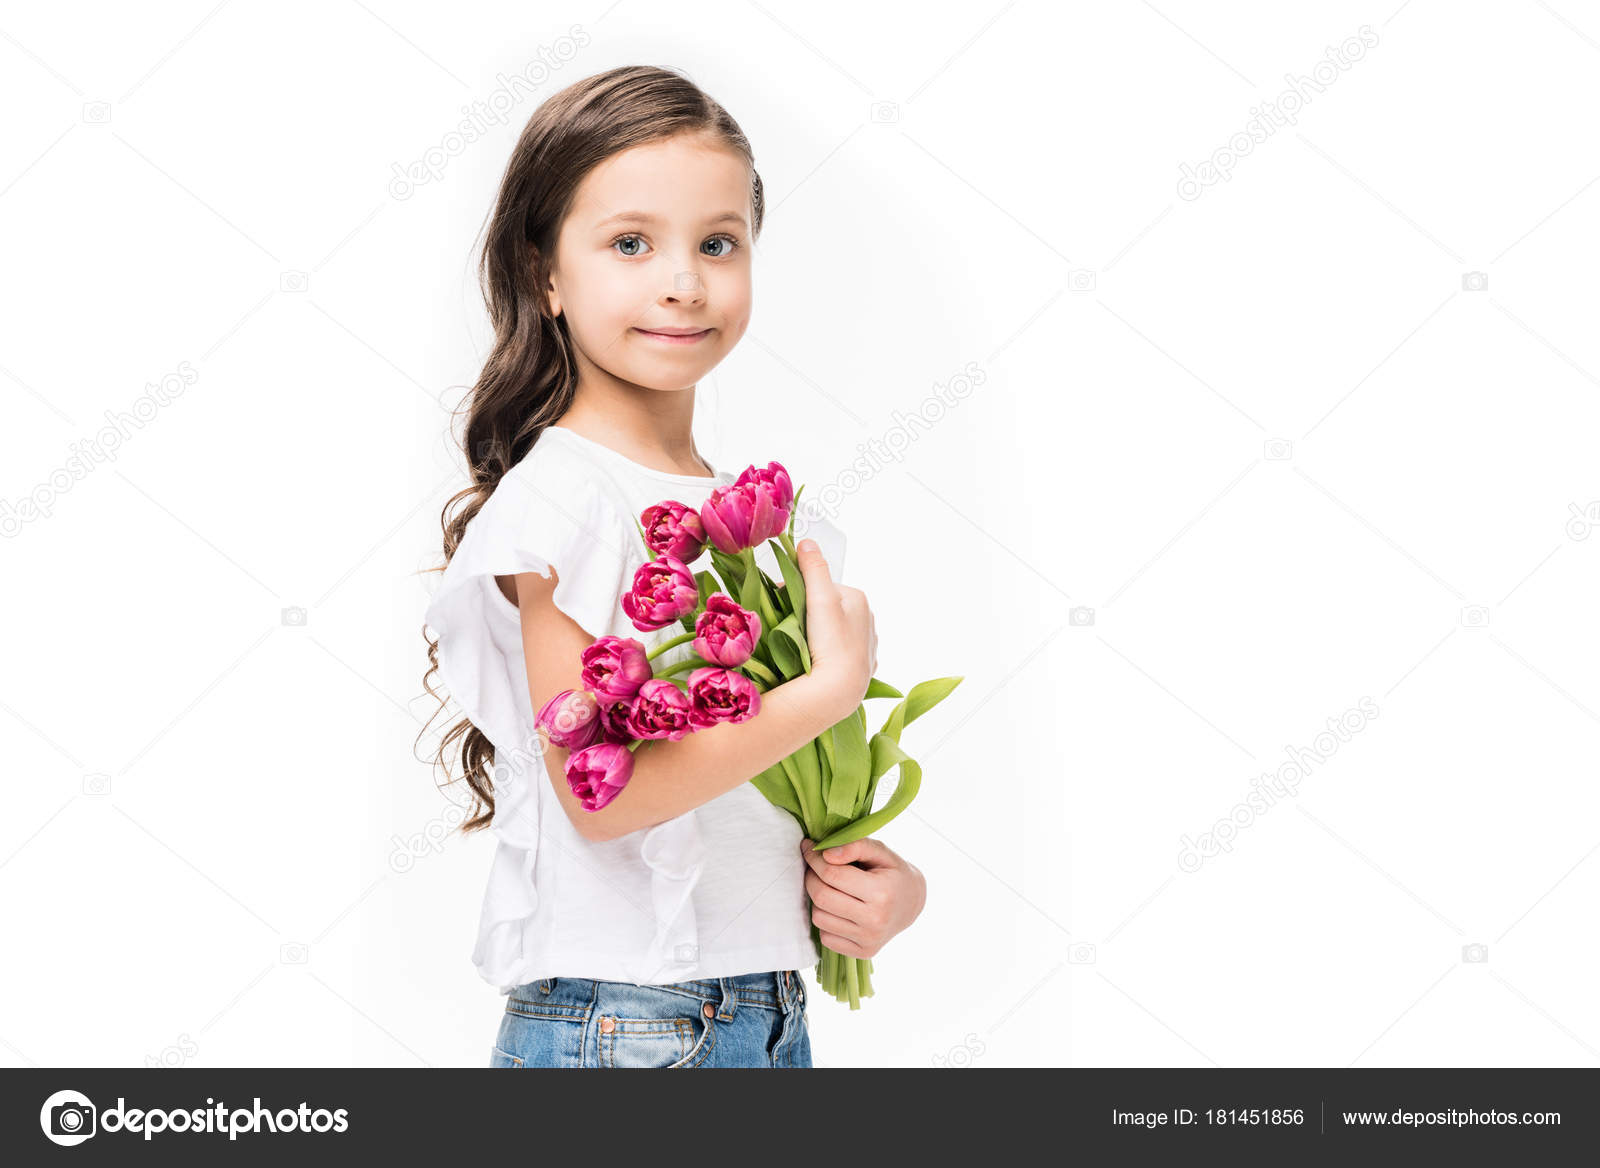 portrait cute child bouquet flowers hands isolated white mothers day